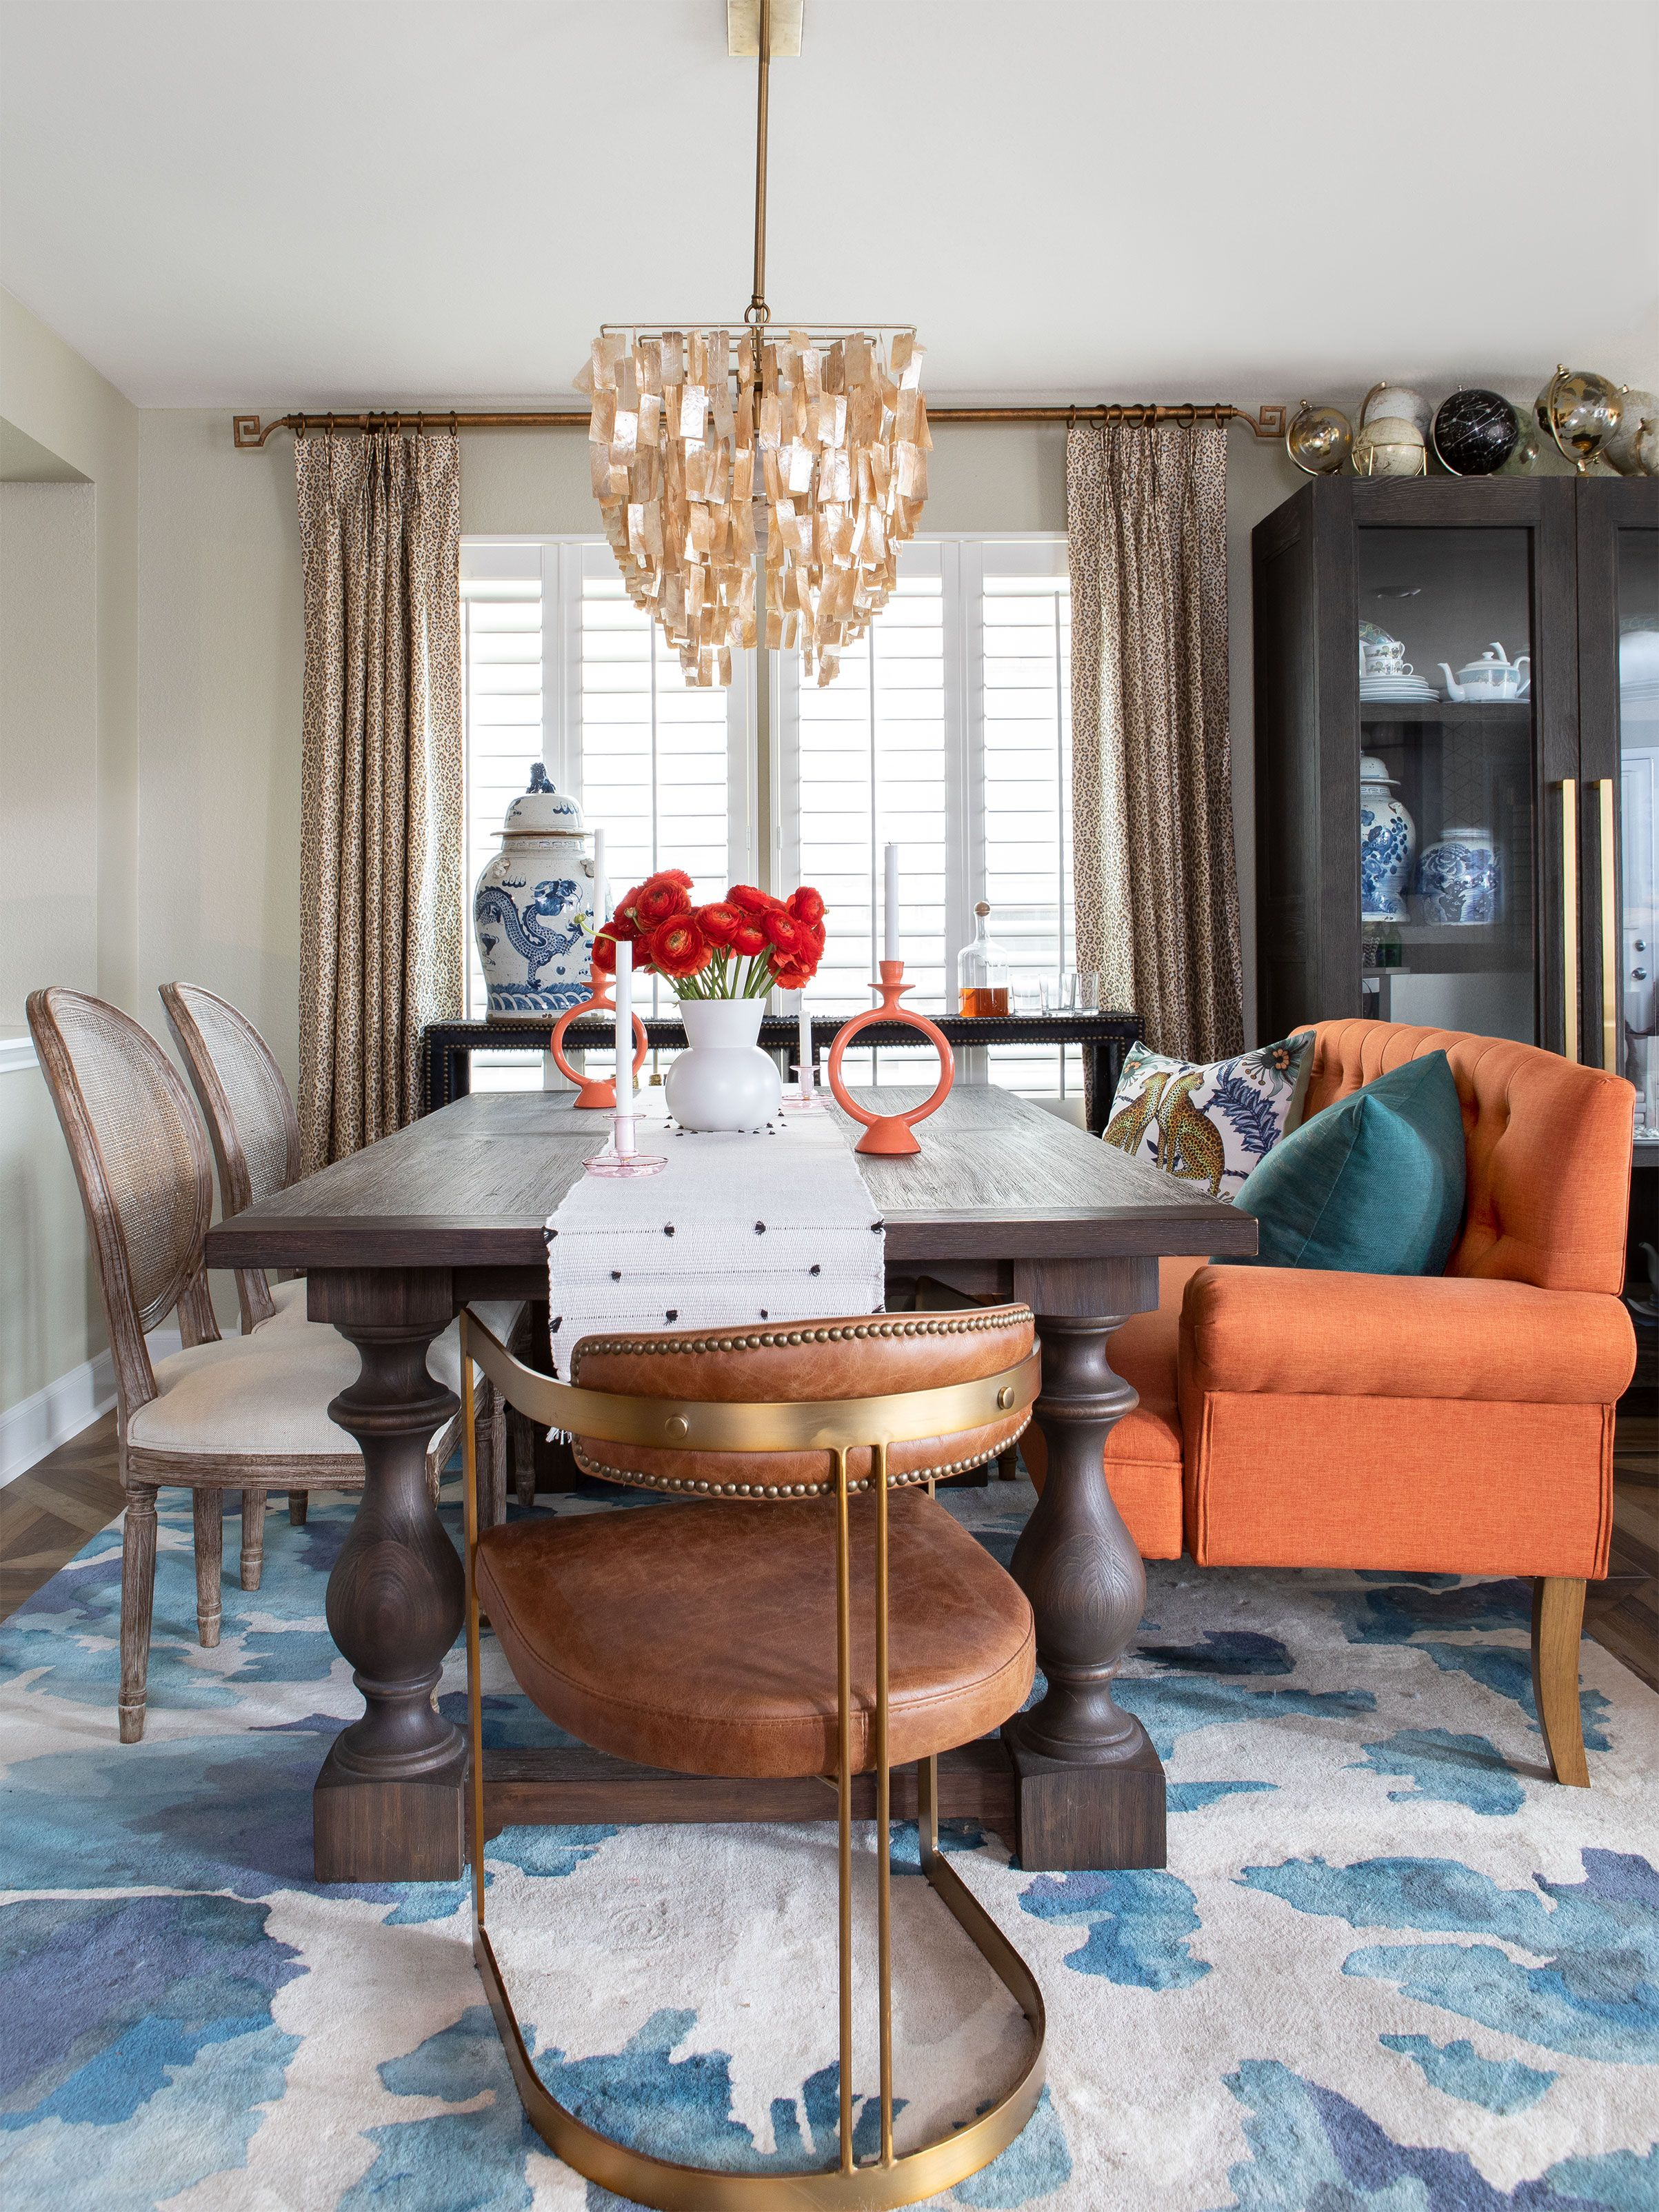 A Maximalist Dining Room Featured In Hgtv Magazine Eclectic Dining Room Fabric Dining Room Ballard Designs Chairs